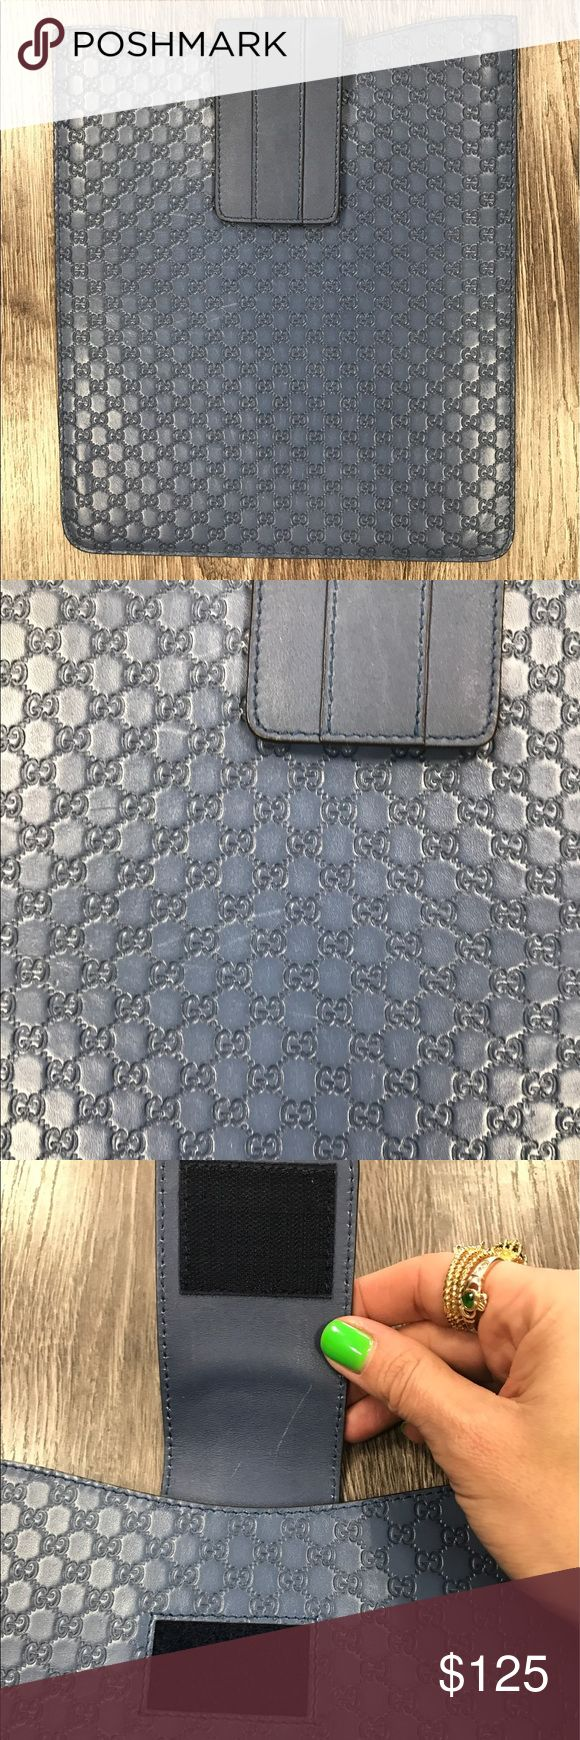 """Auth Gucci blue leather embossed I-Pad case Like new Gucci leather """"G"""" embossed I-Pad case in a beautiful blue color... great condition Gucci Accessories Phone Cases"""